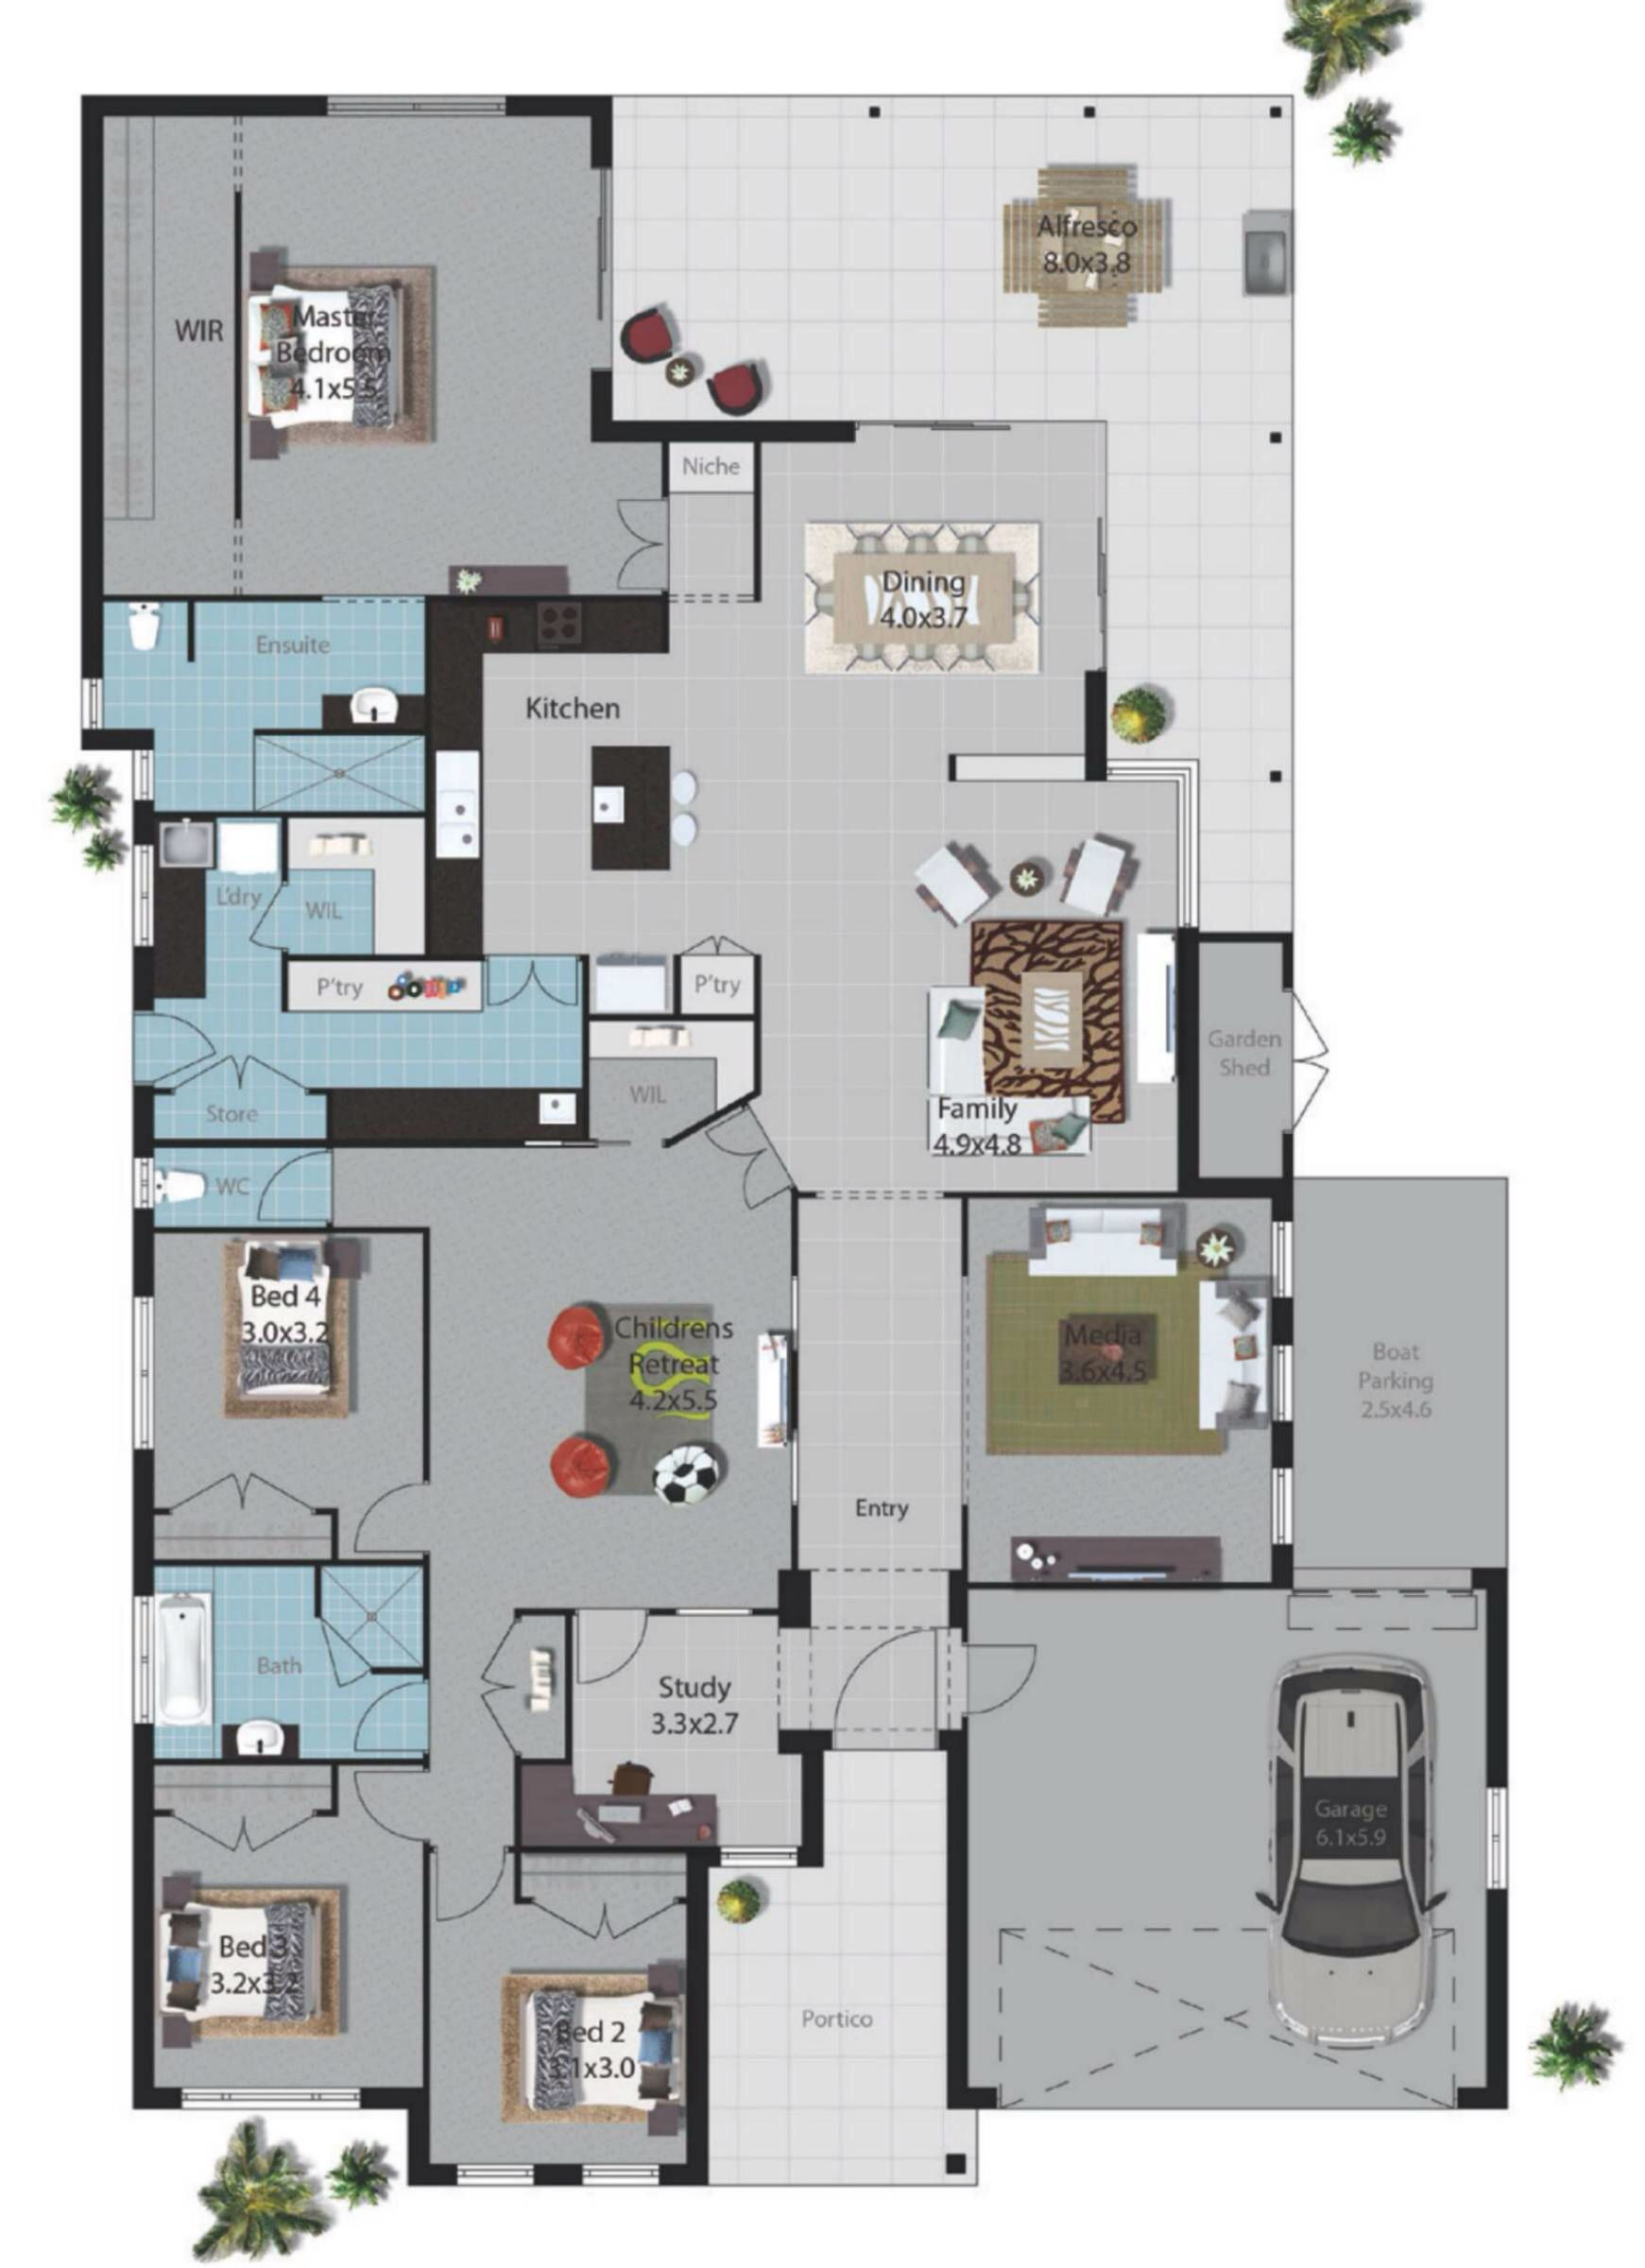 My dream home with a few small changes | Plány domov | Pinterest ...